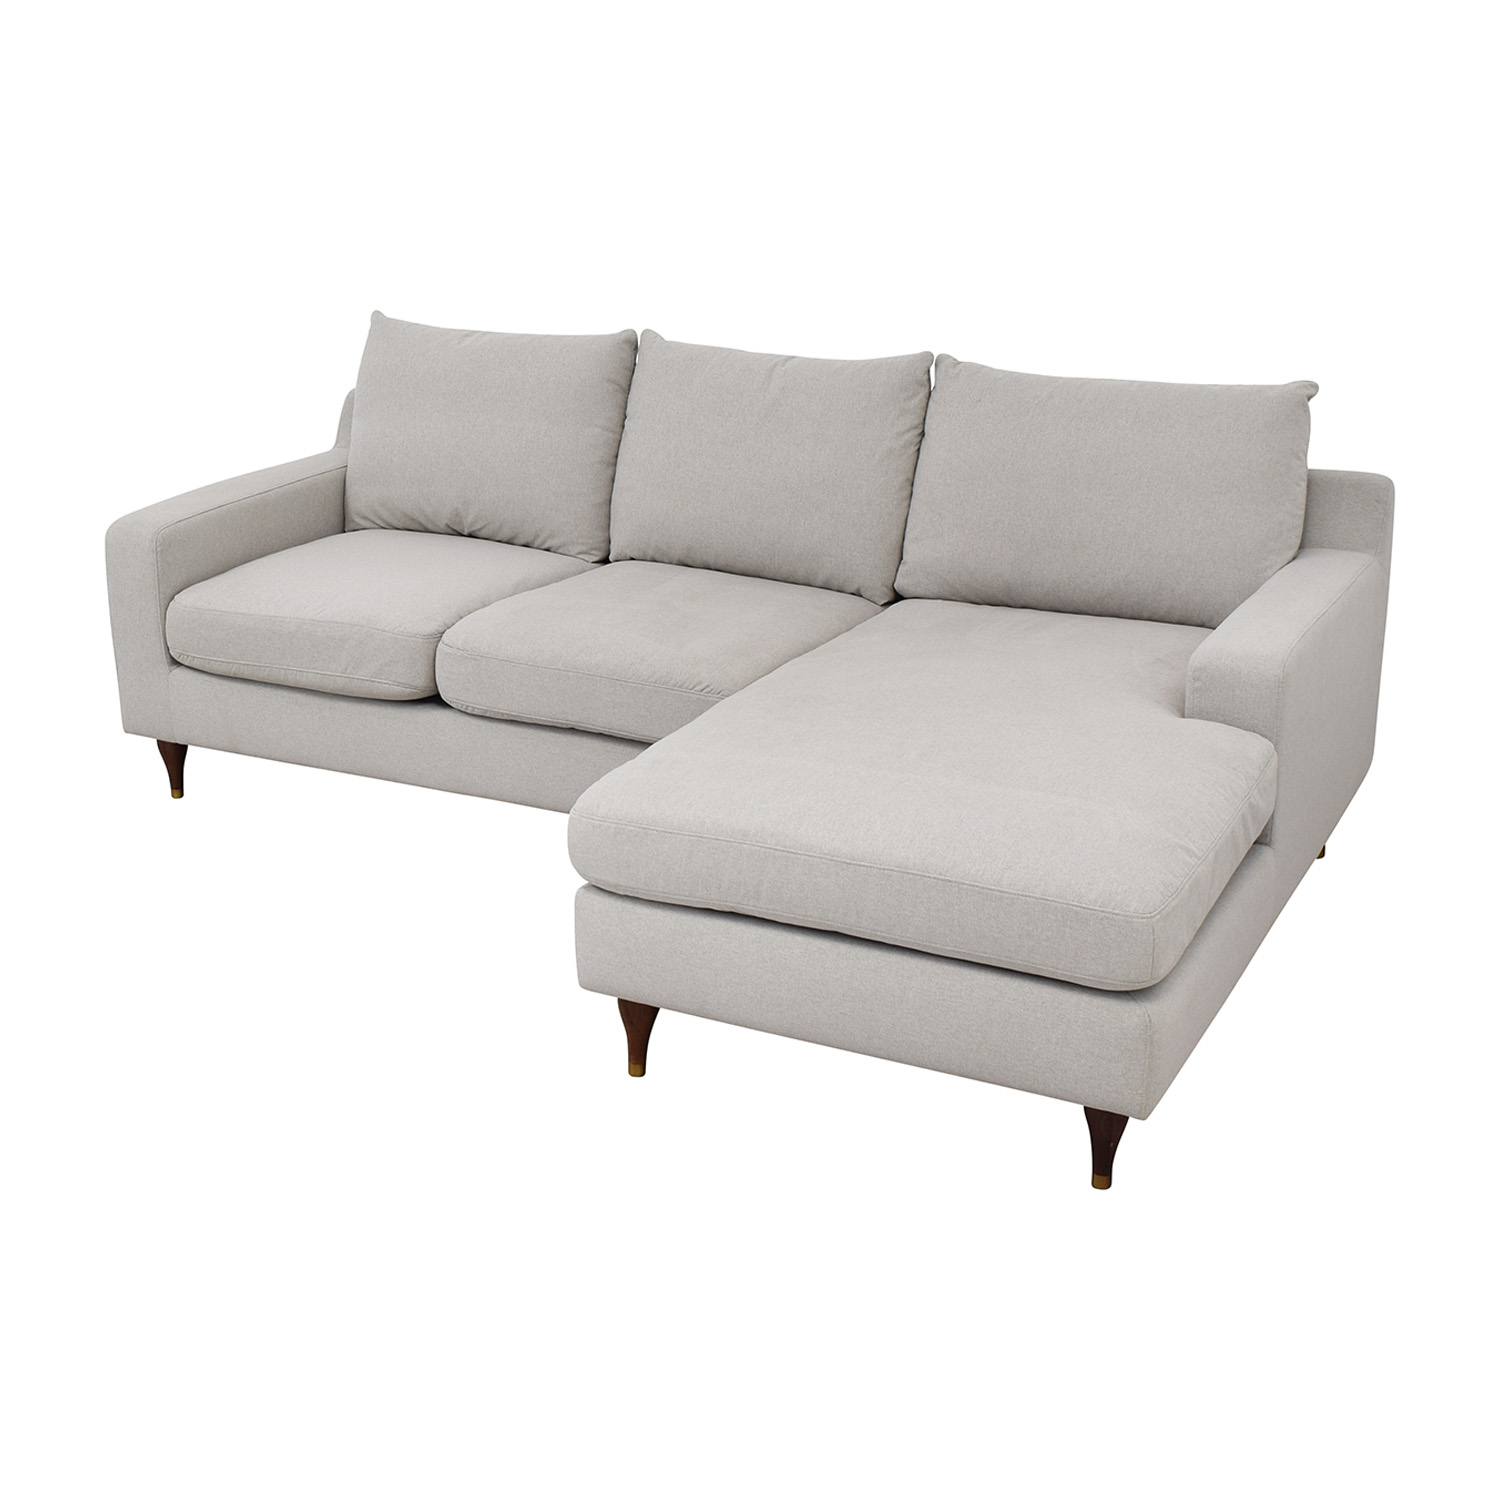 Interior Define Sloan Sectional Sofa with Chaise Interior Define